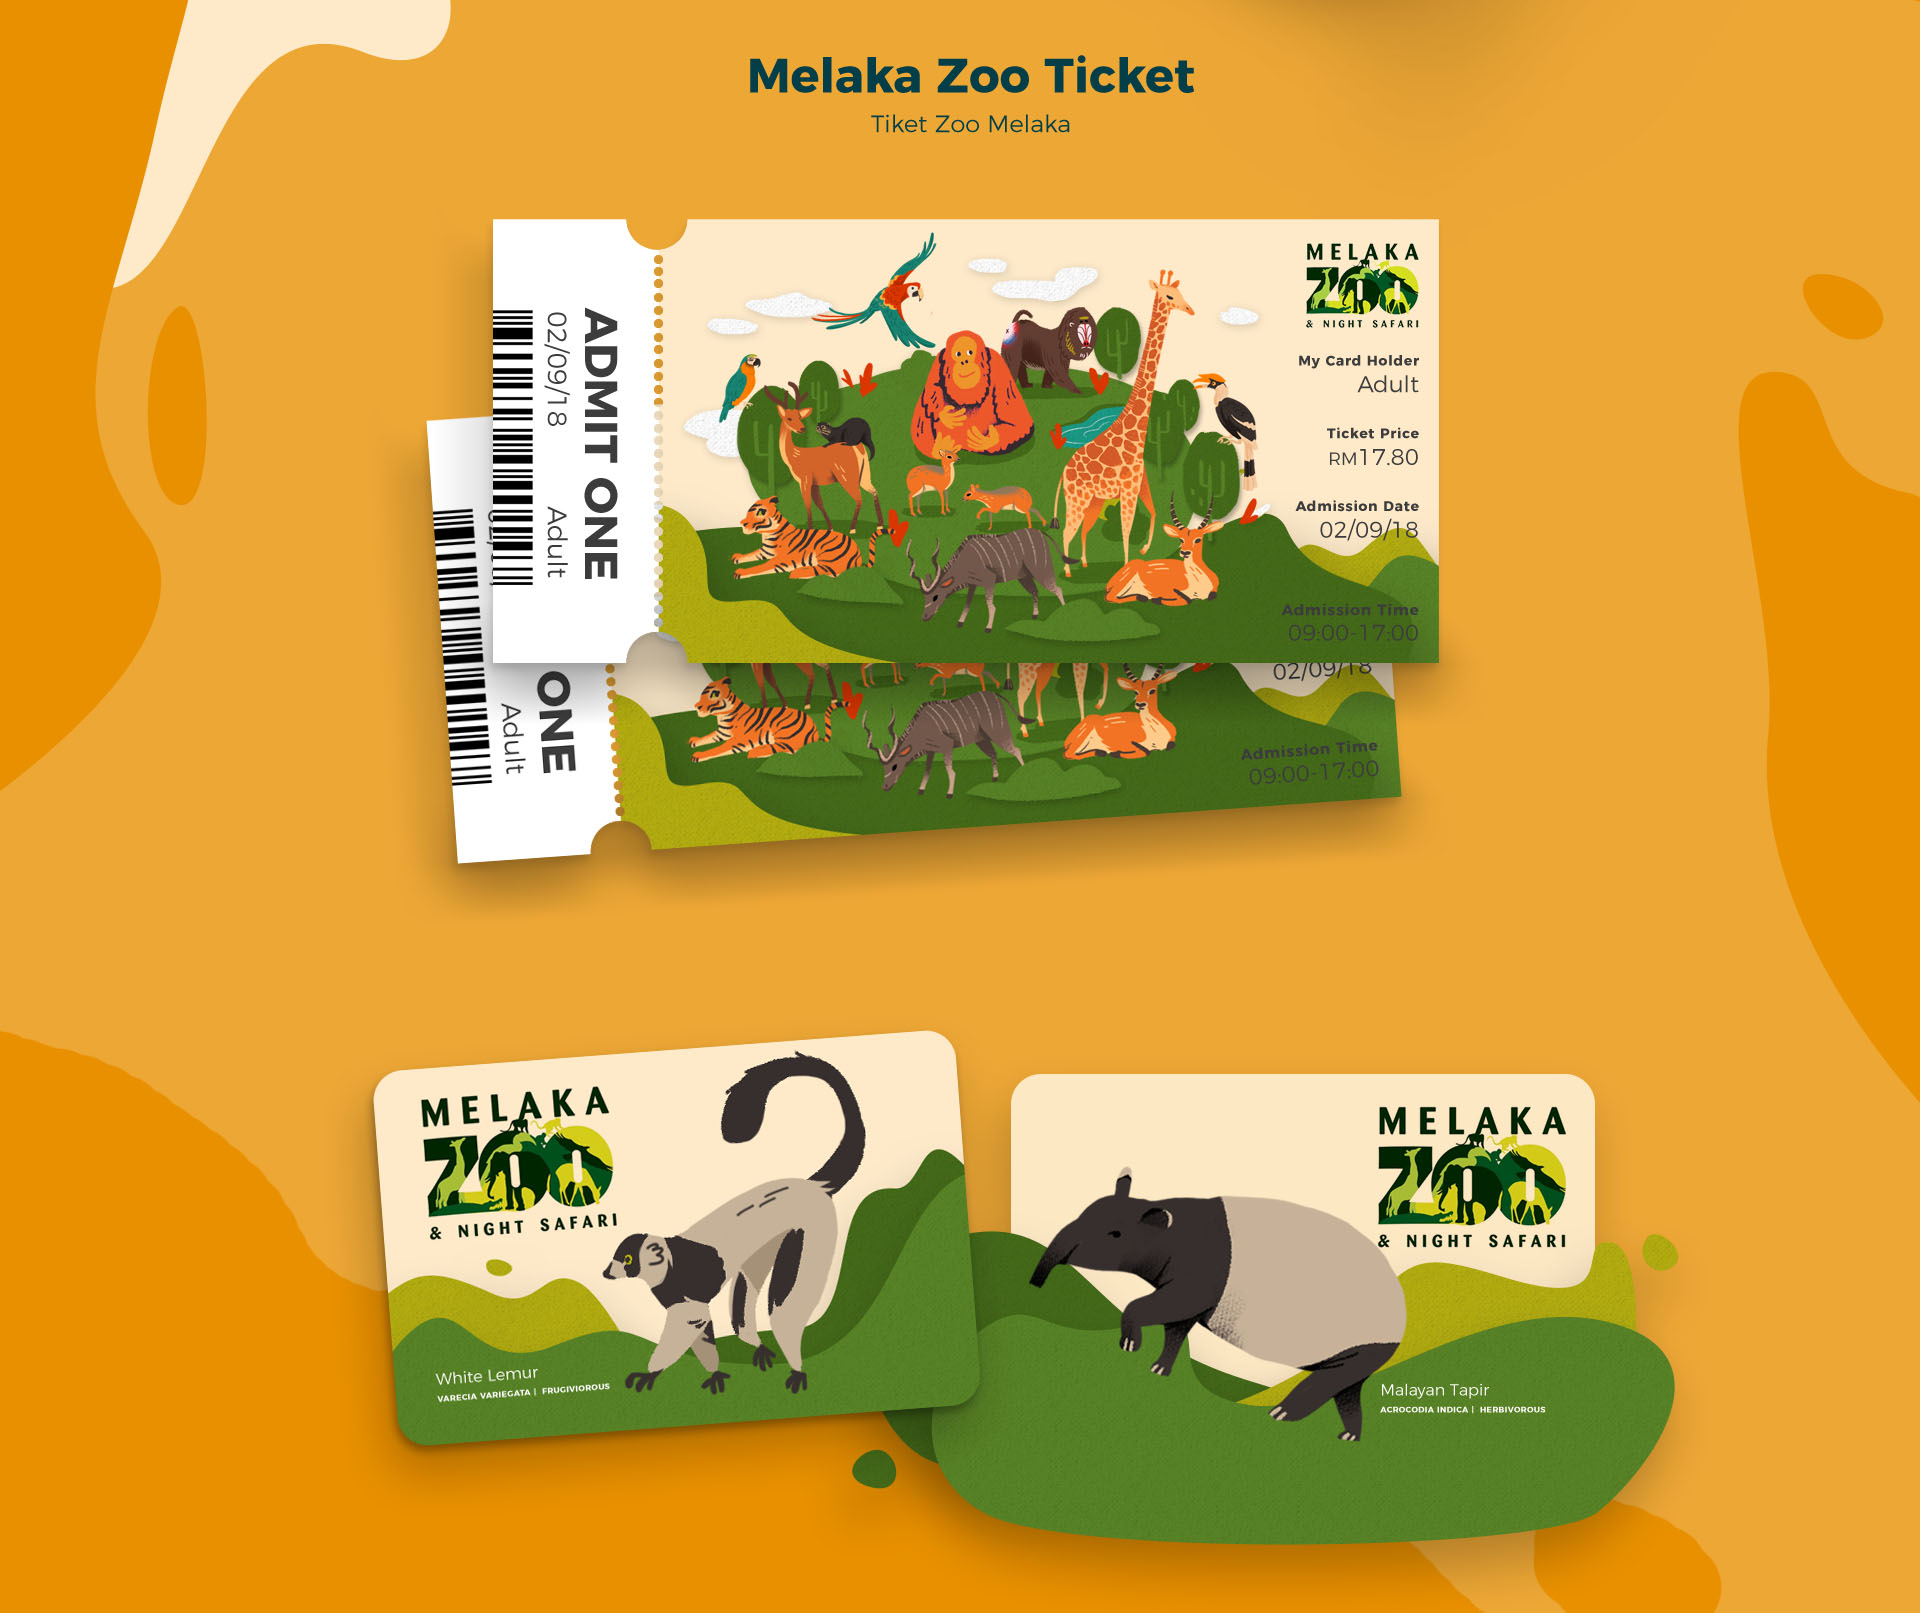 Melaka Zoo Map Ticket Illustration